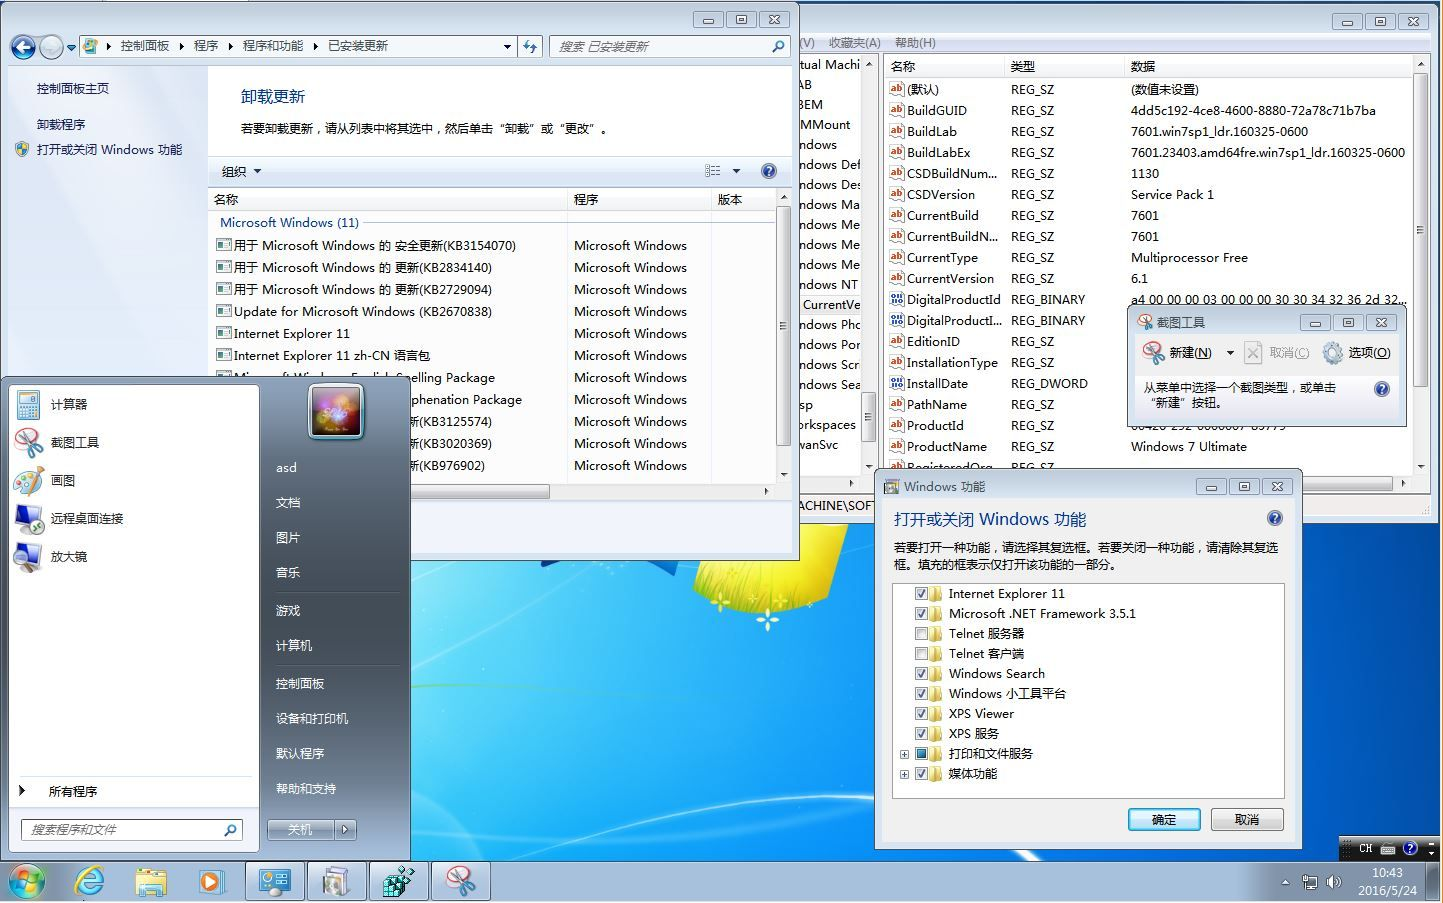 Windows 7 Ultimate SP1 7601.23403 RollUP 2016 x86-x64 zh-CN Micro v2 -02